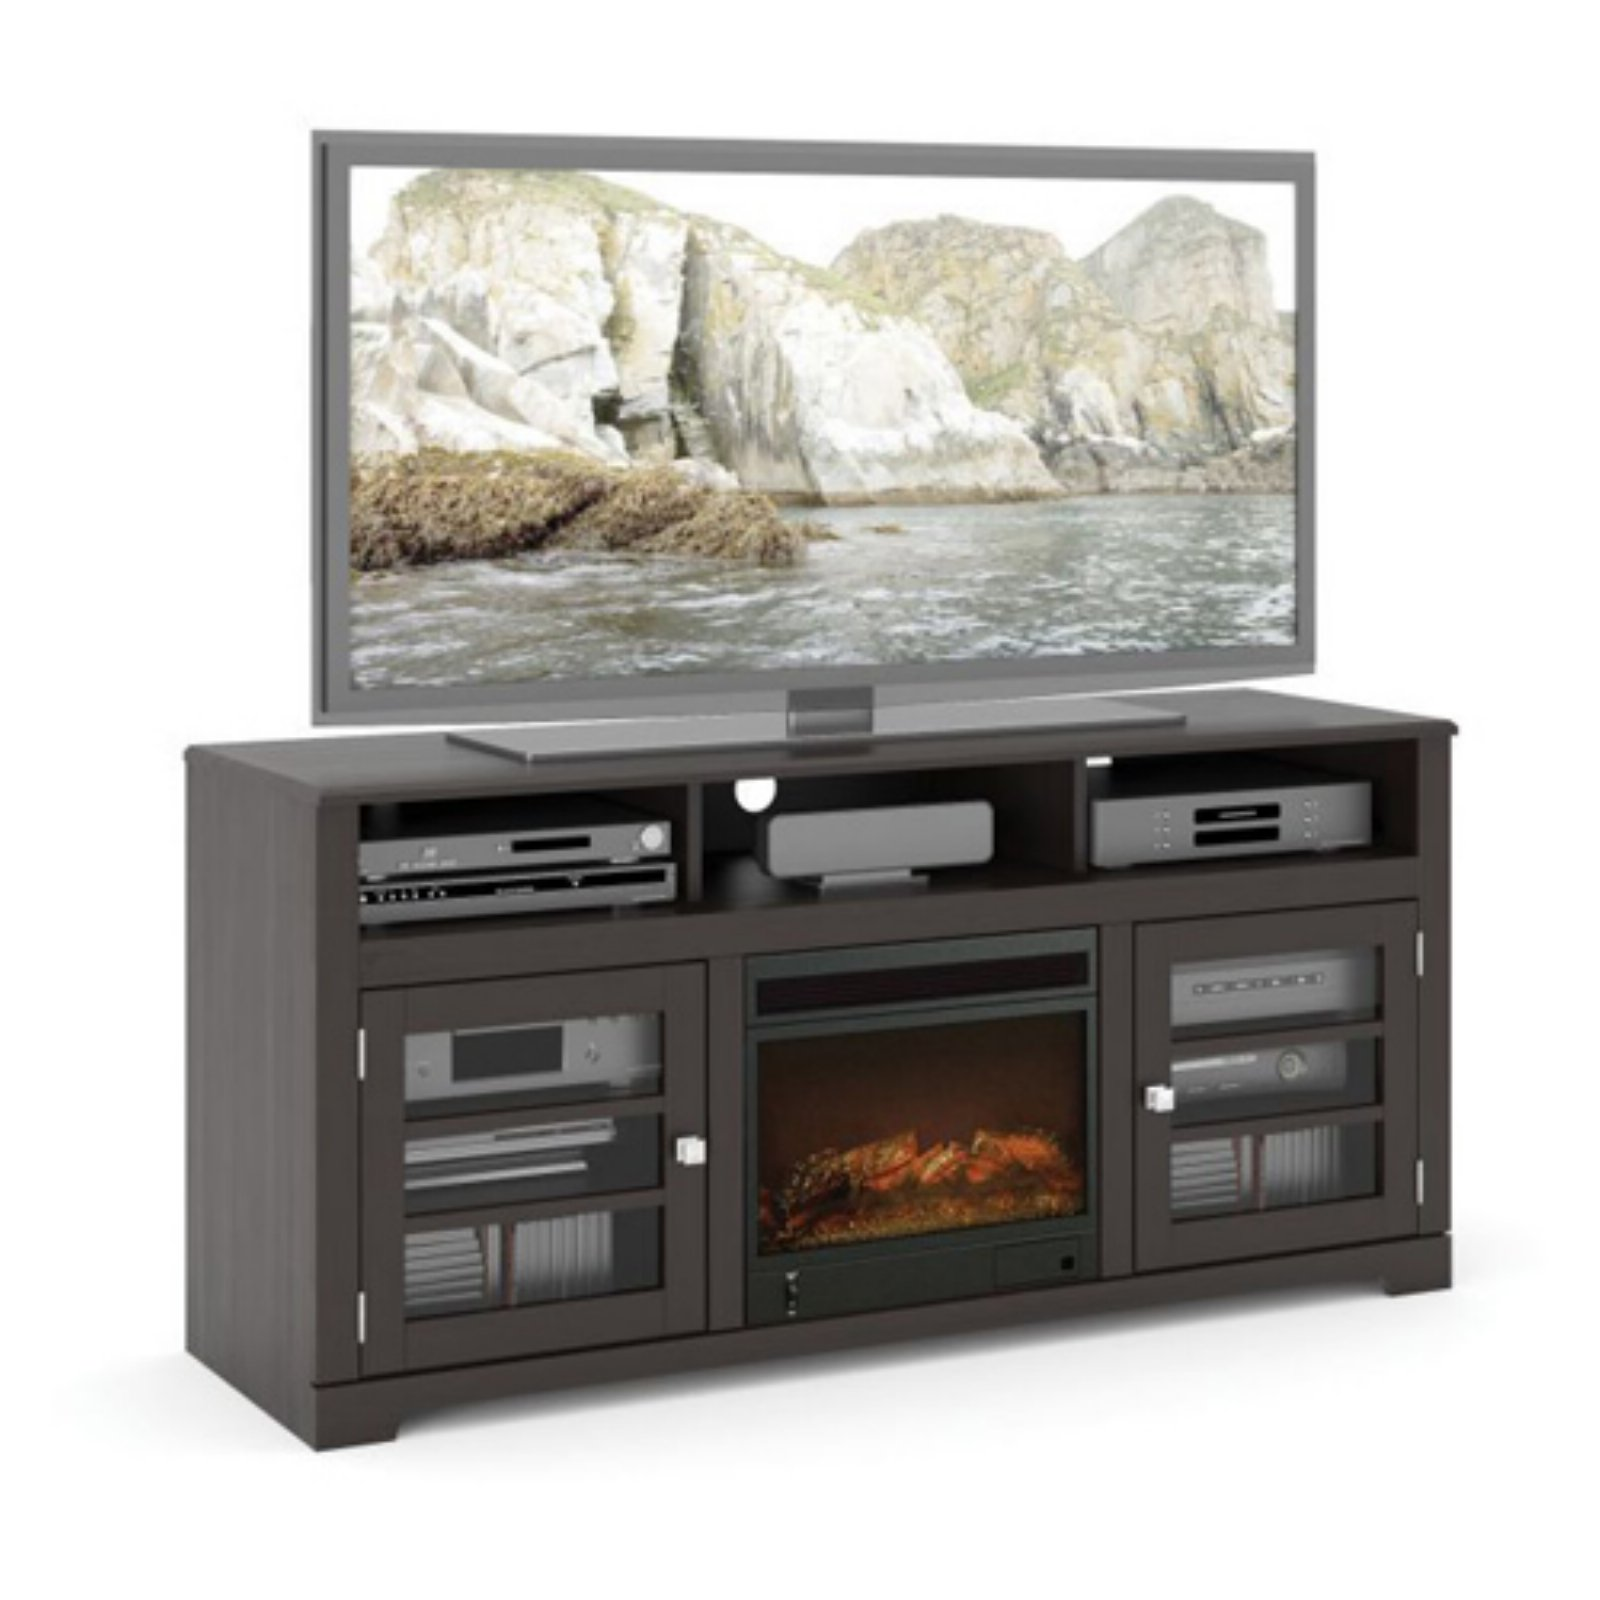 CorLiving F-602-BWT West Lake 60 in. Fireplace Bench Mocha Black by CorLiving